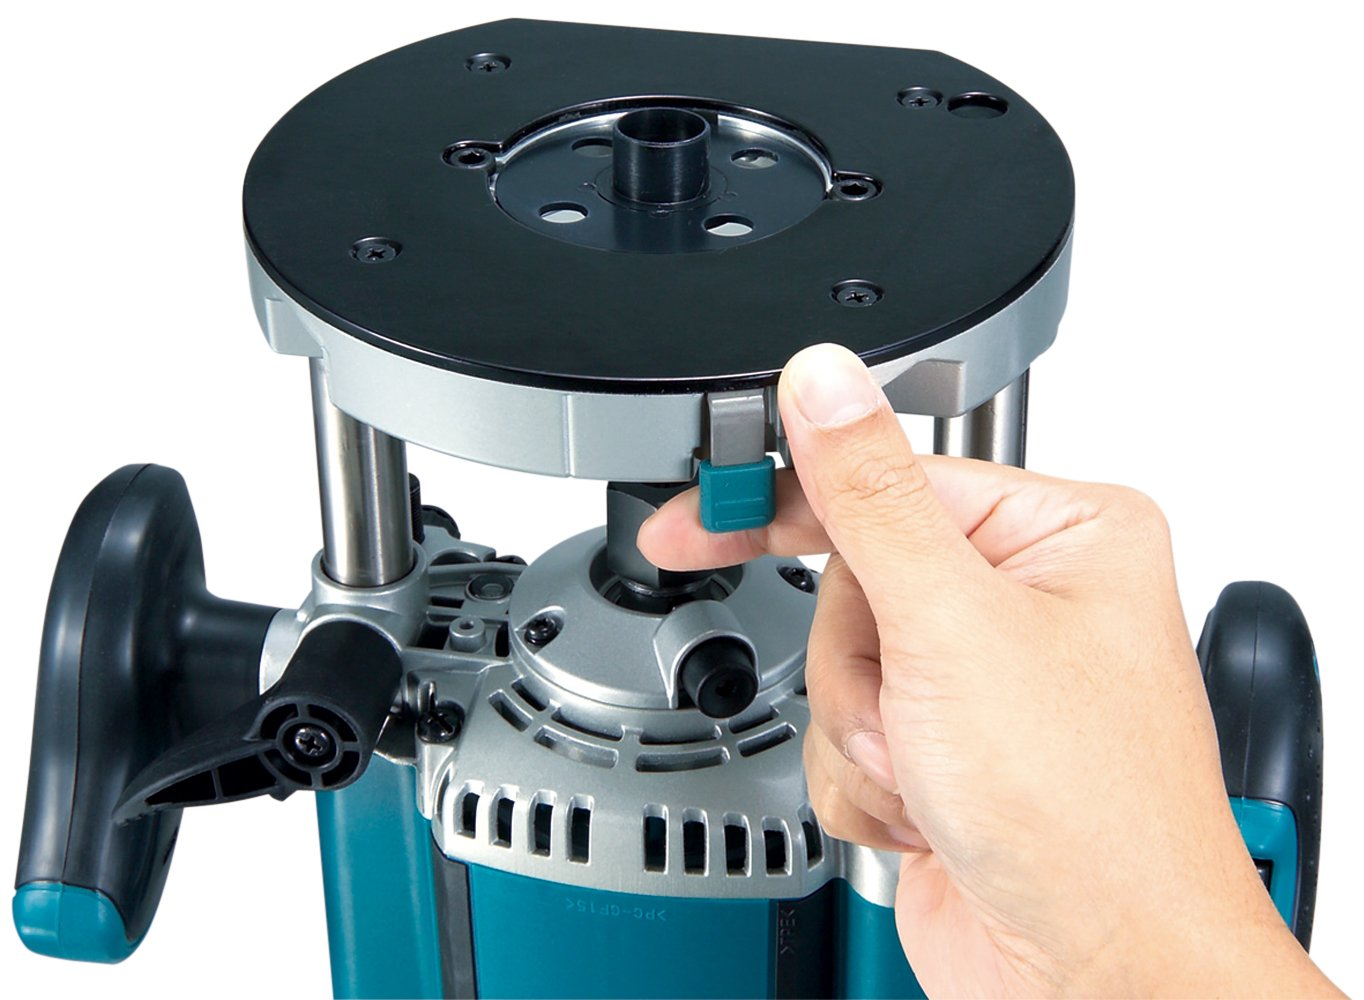 Makita RP2301FC 3-1/4 HP Plunge Router (Variable Speed) by Makita (Image #5)